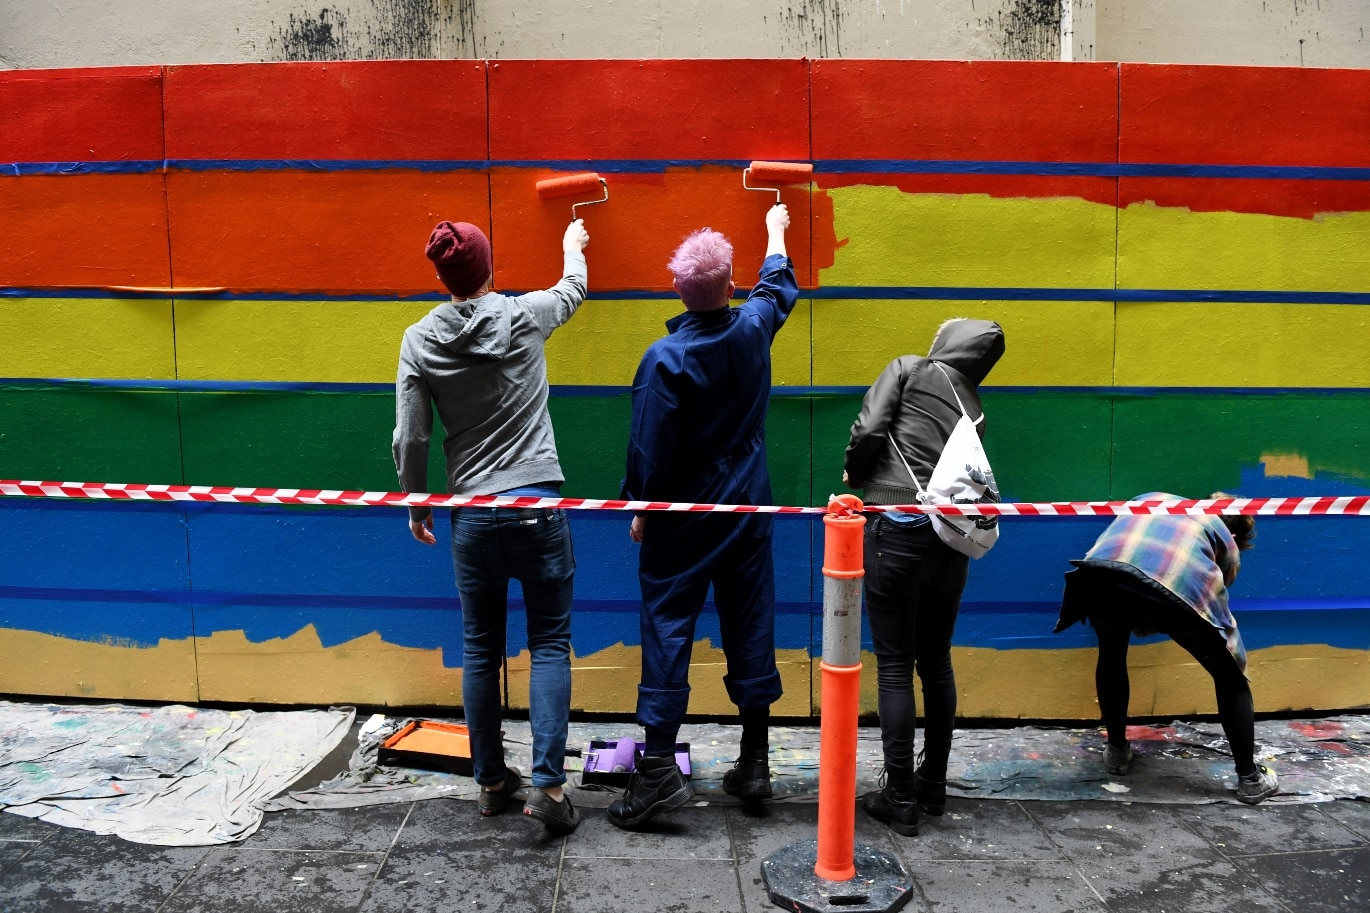 High Court rules in favour of same-sex marriage postal survey